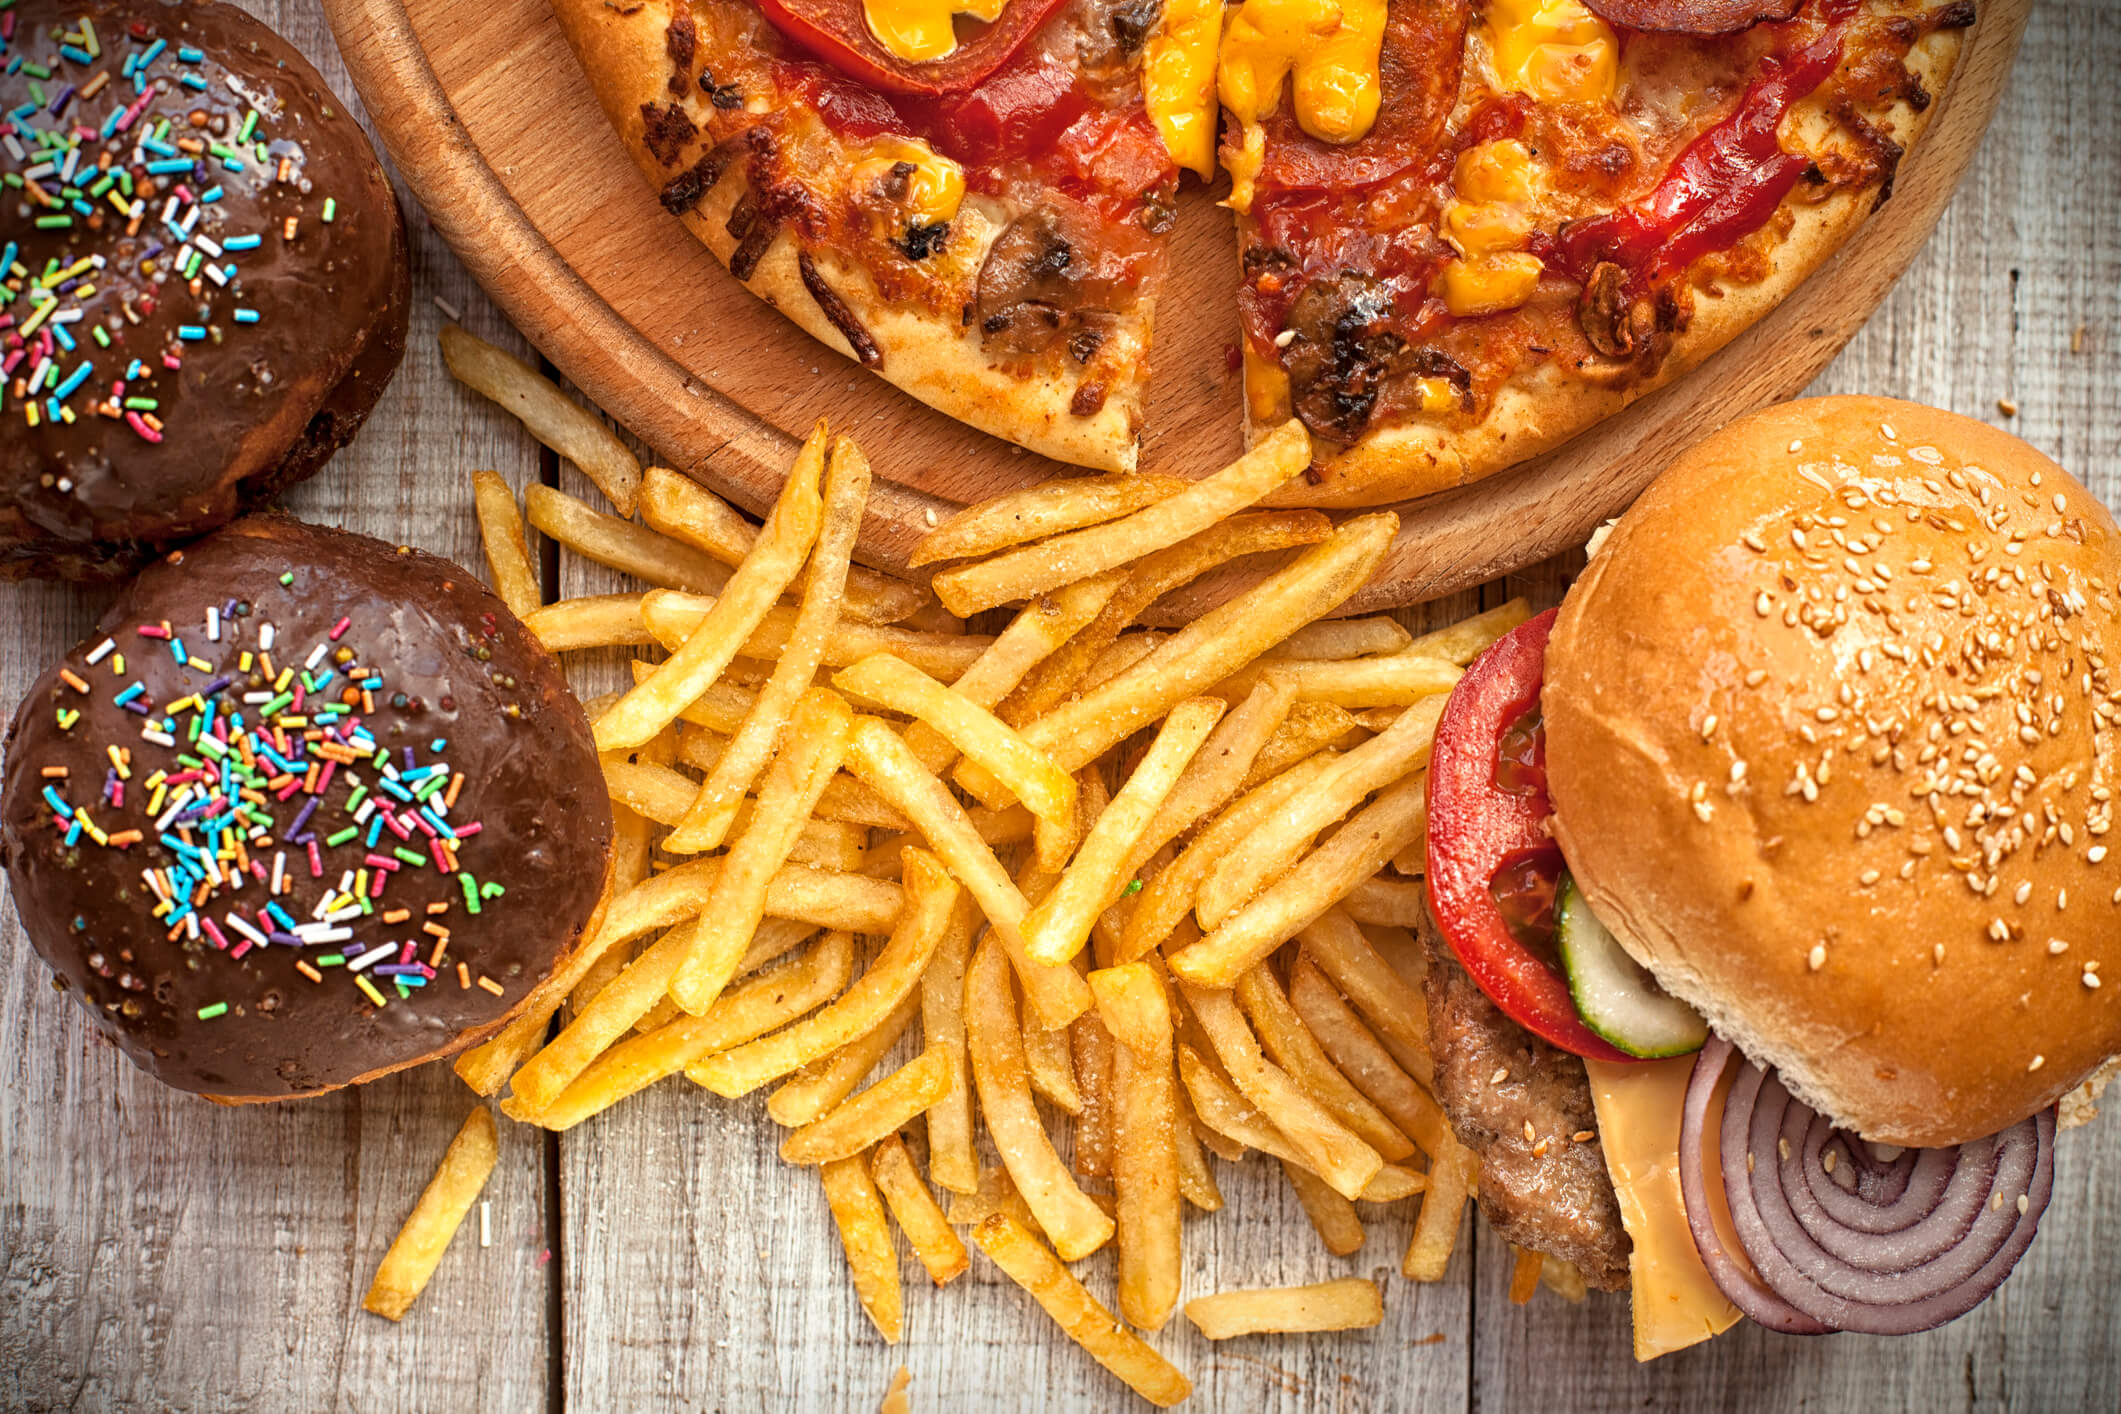 Fast food spread out on a table